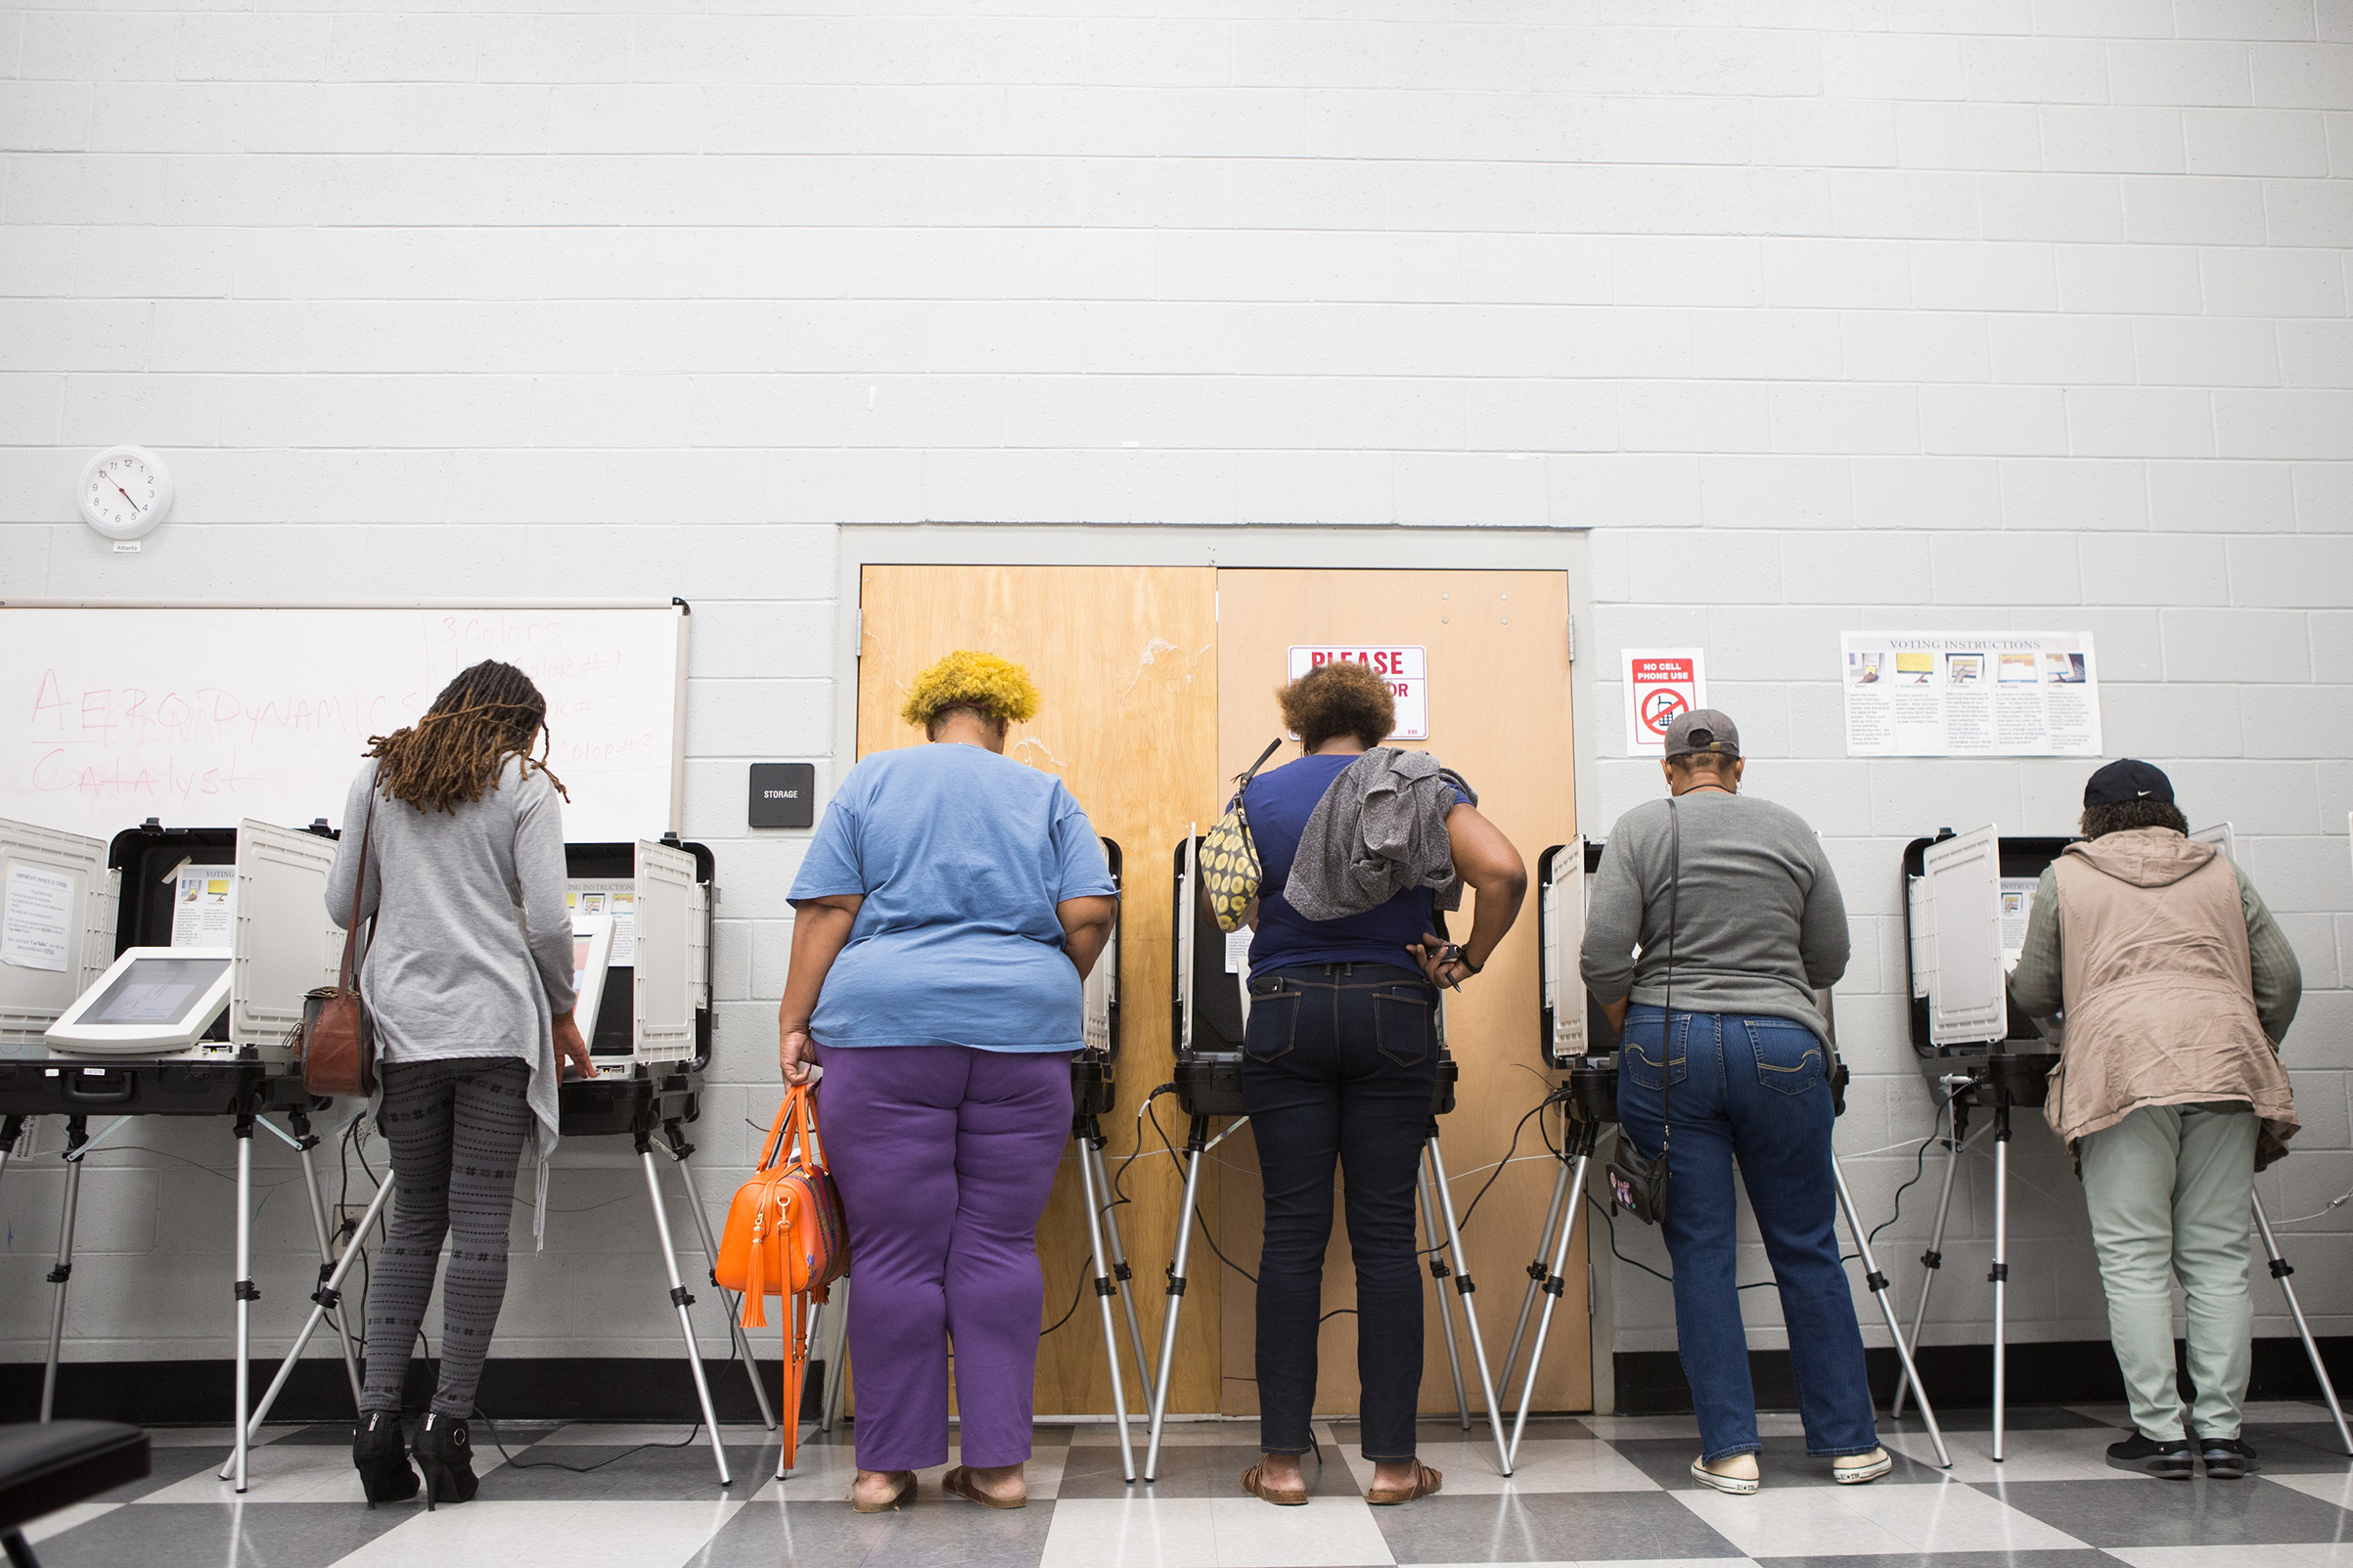 Voters cast their ballots during early voting in Atlanta on Oct. 18